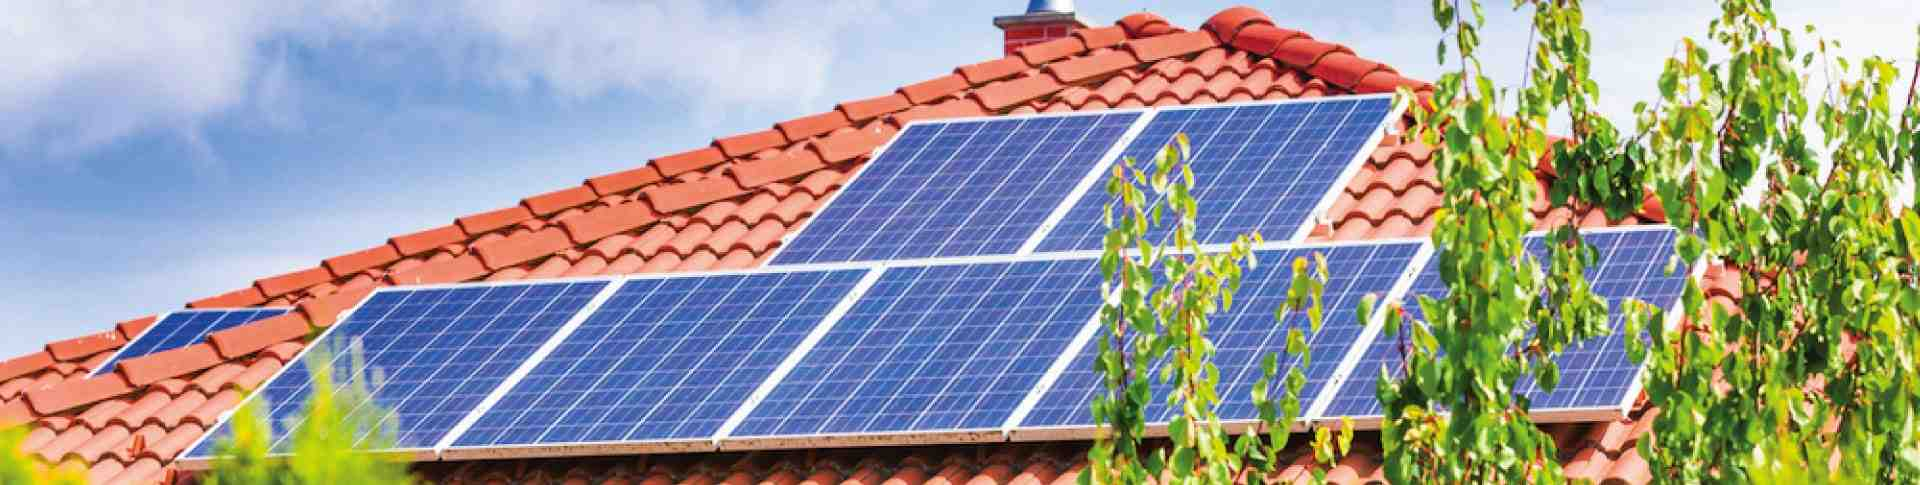 How much is labor for installing solar?